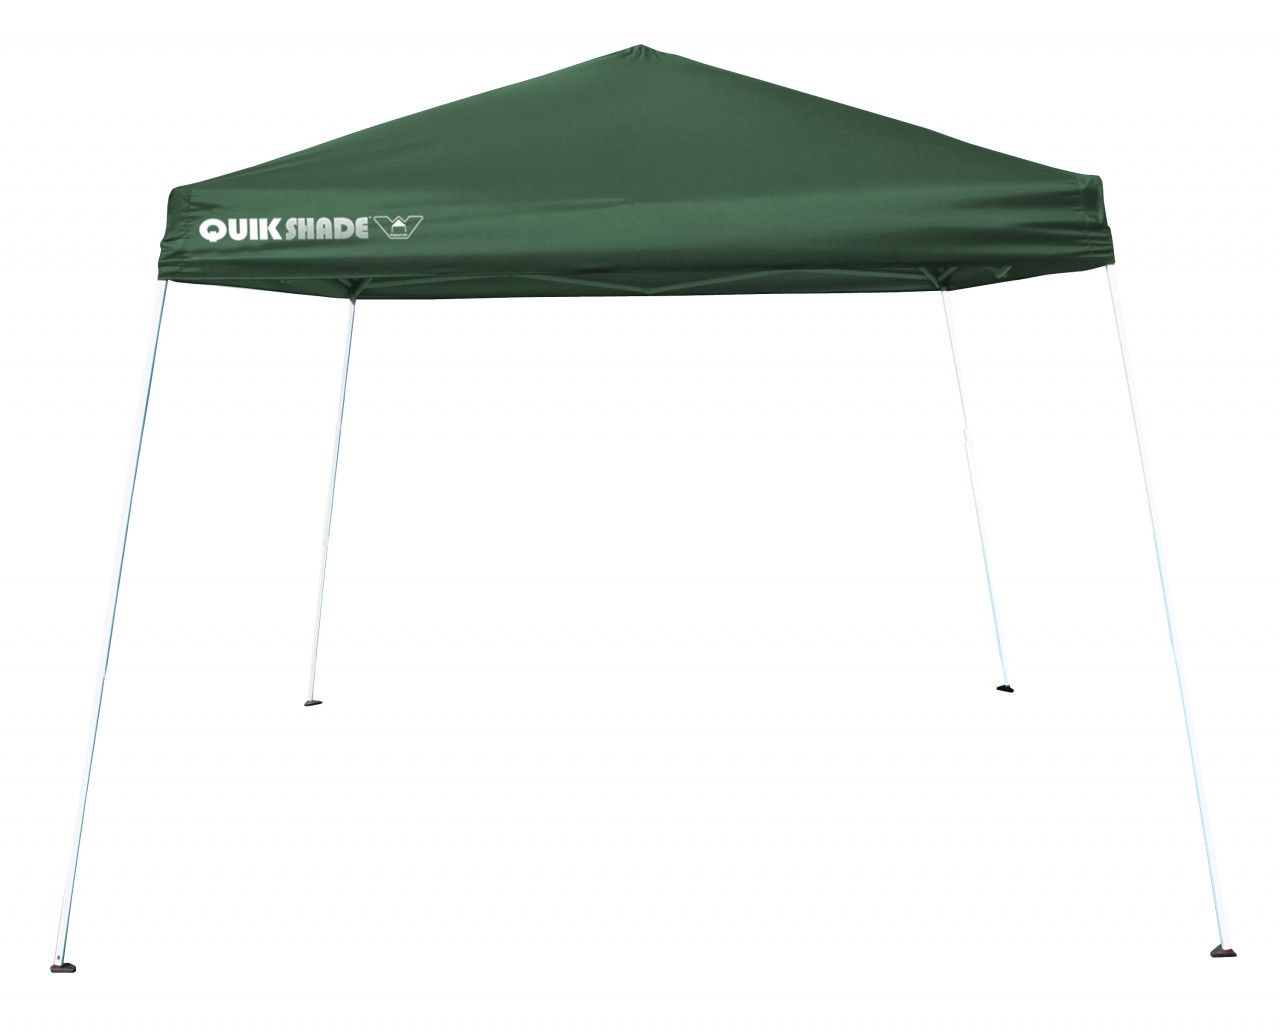 Quik Shade Canopy and Replacement Parts | W81 - Forest  sc 1 st  Pinterest & Quik Shade Canopy and Replacement Parts | W81 - Forest ...